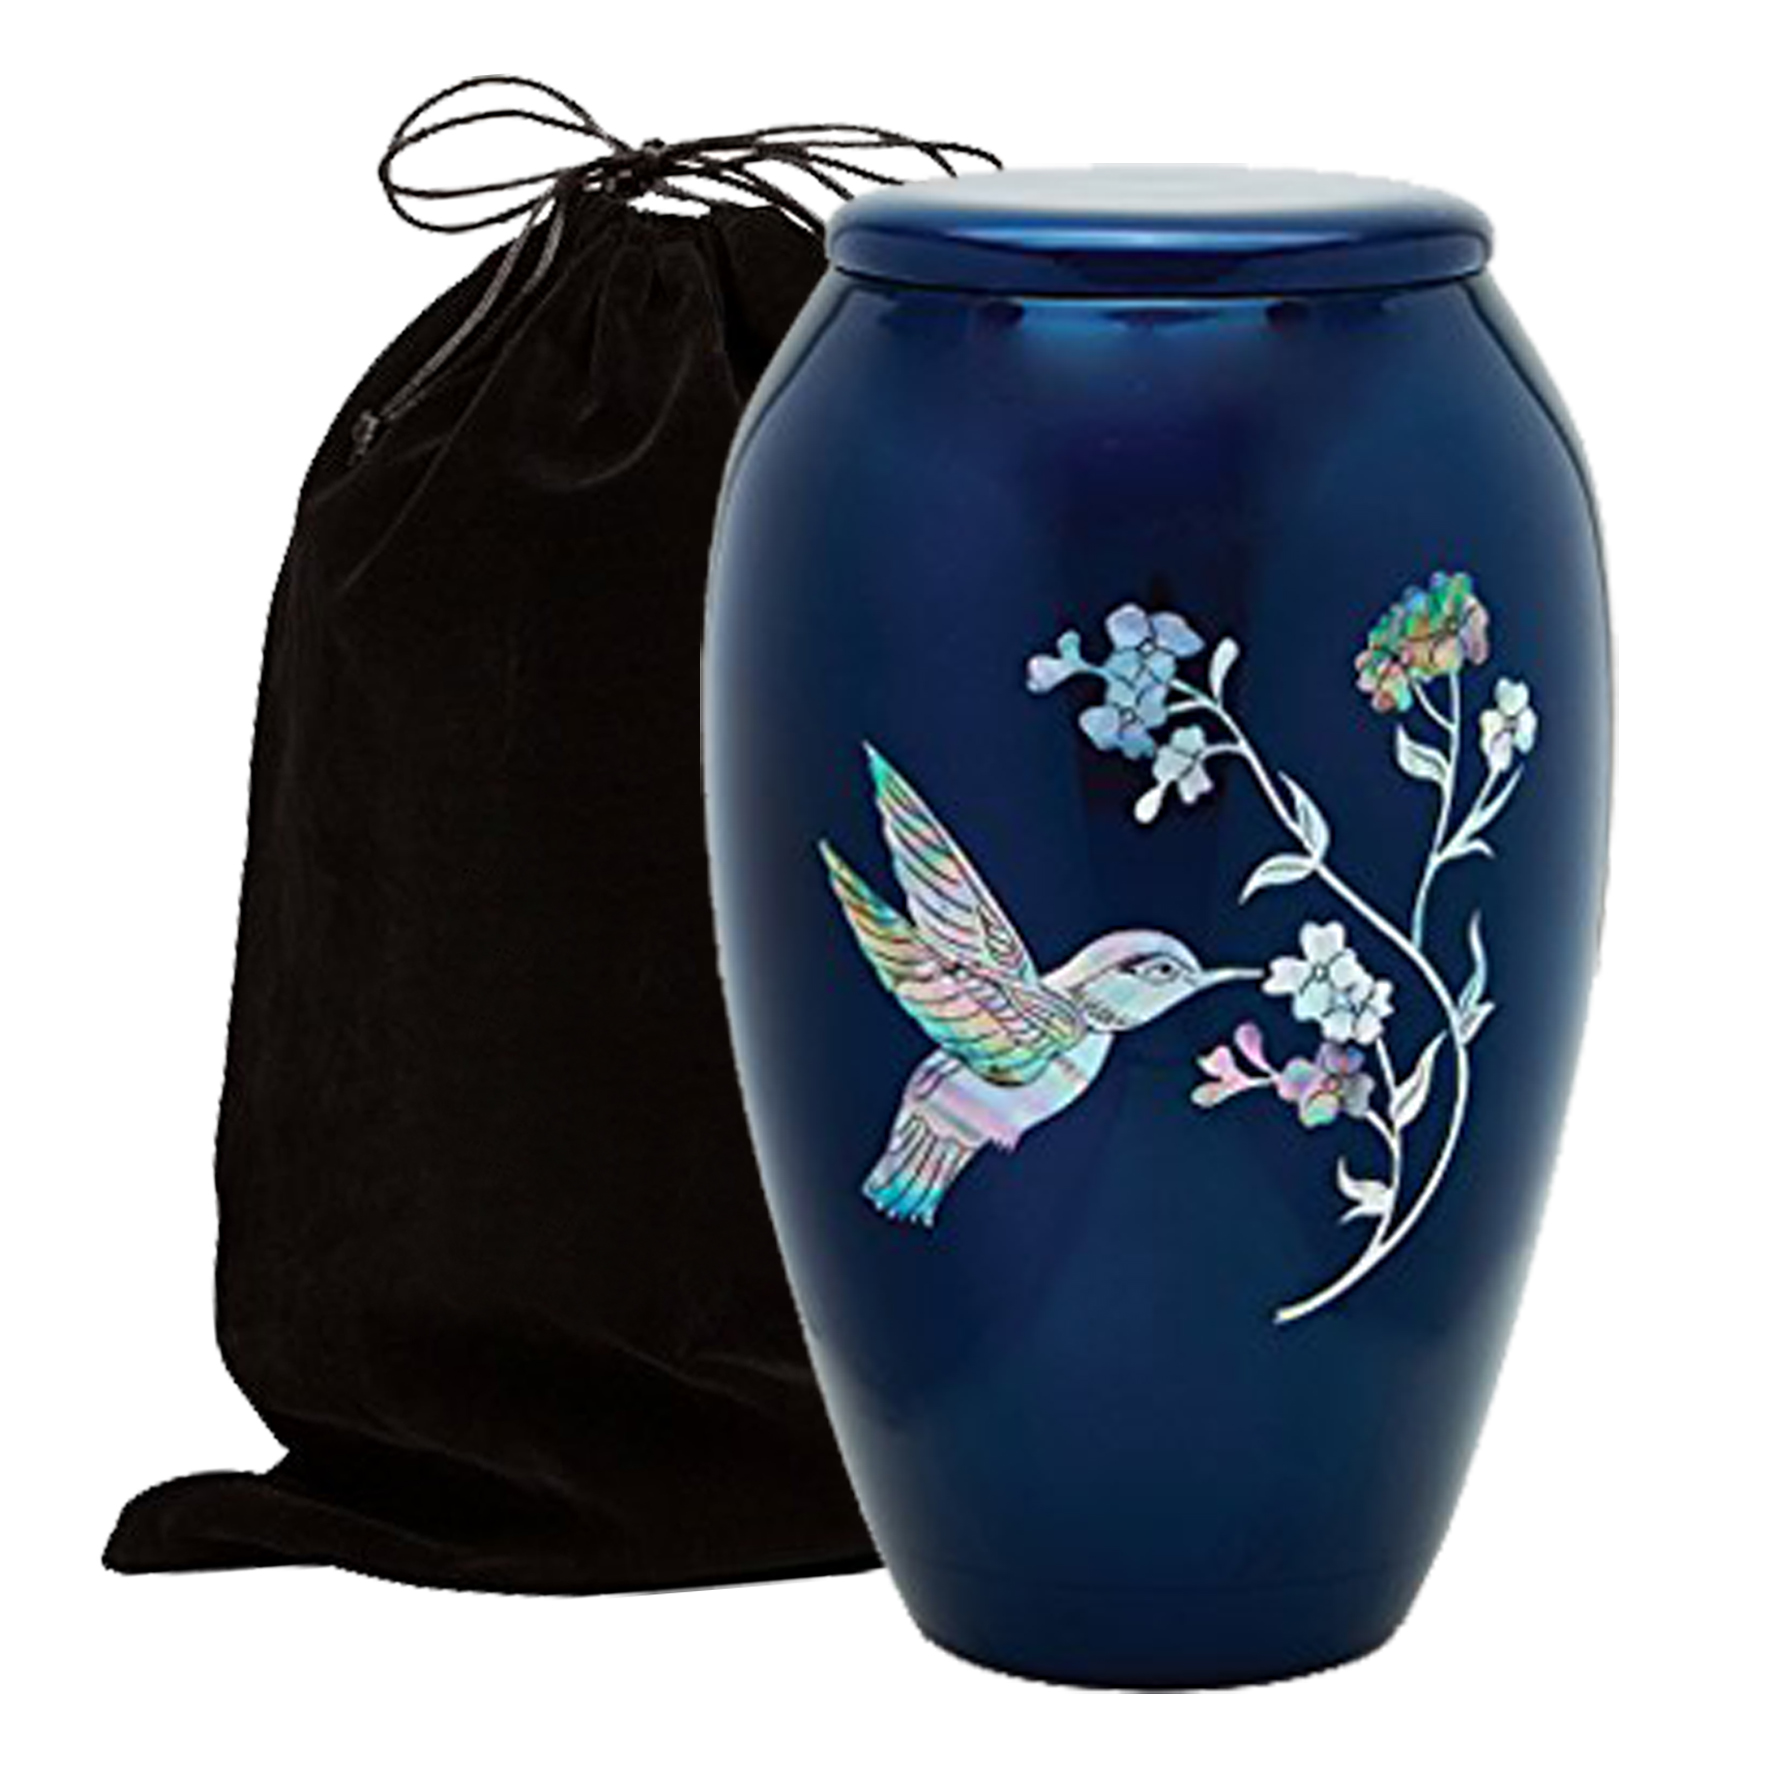 Mother of Pearl Inlaid Metal Cremation Urn - MOP Cremation Urn - Solid Metal Funeral Urn - Handcrafted Adult Funeral Urn for Ashes - Great Urn Deal with Free Bag (Blue Hummingbird)